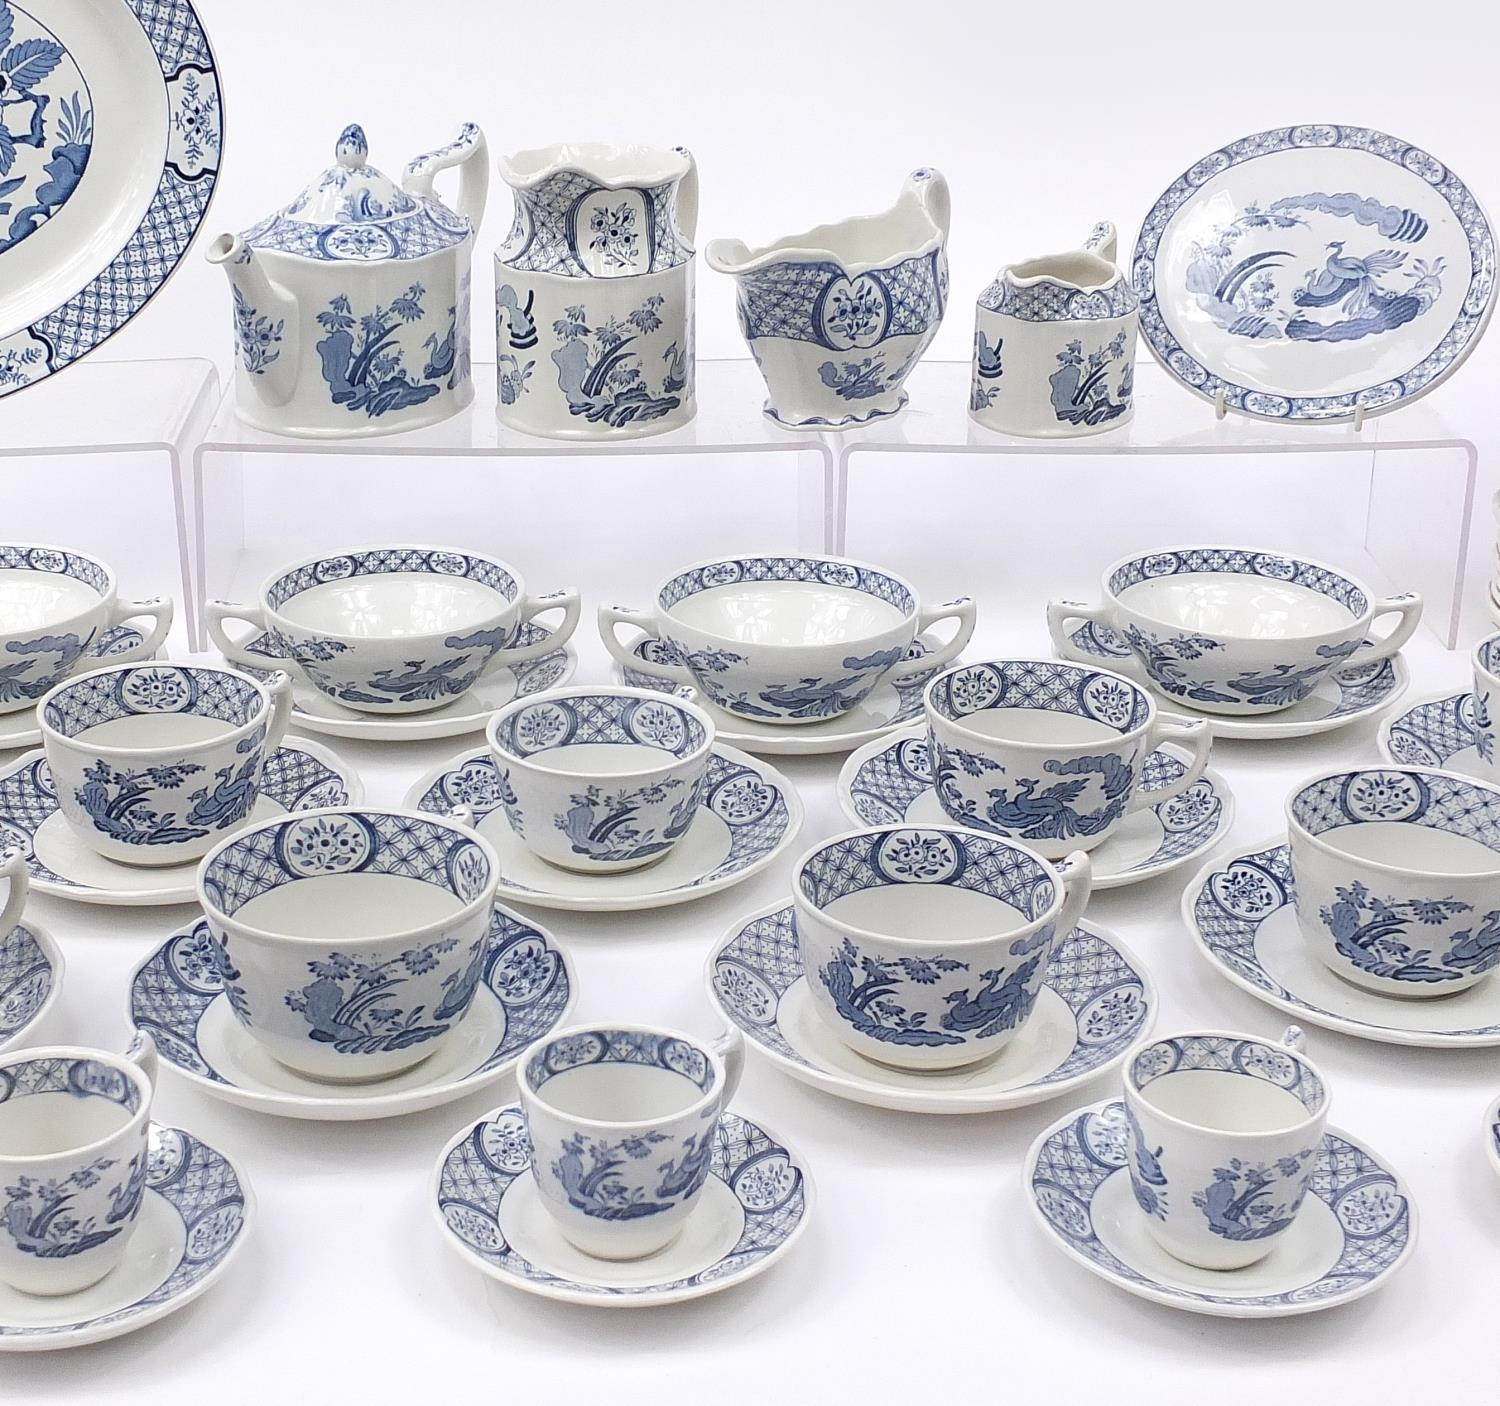 Collection of Furnivals & Masons Old Chelsea dinner and teaware including teapot and stand, cups - Image 3 of 5